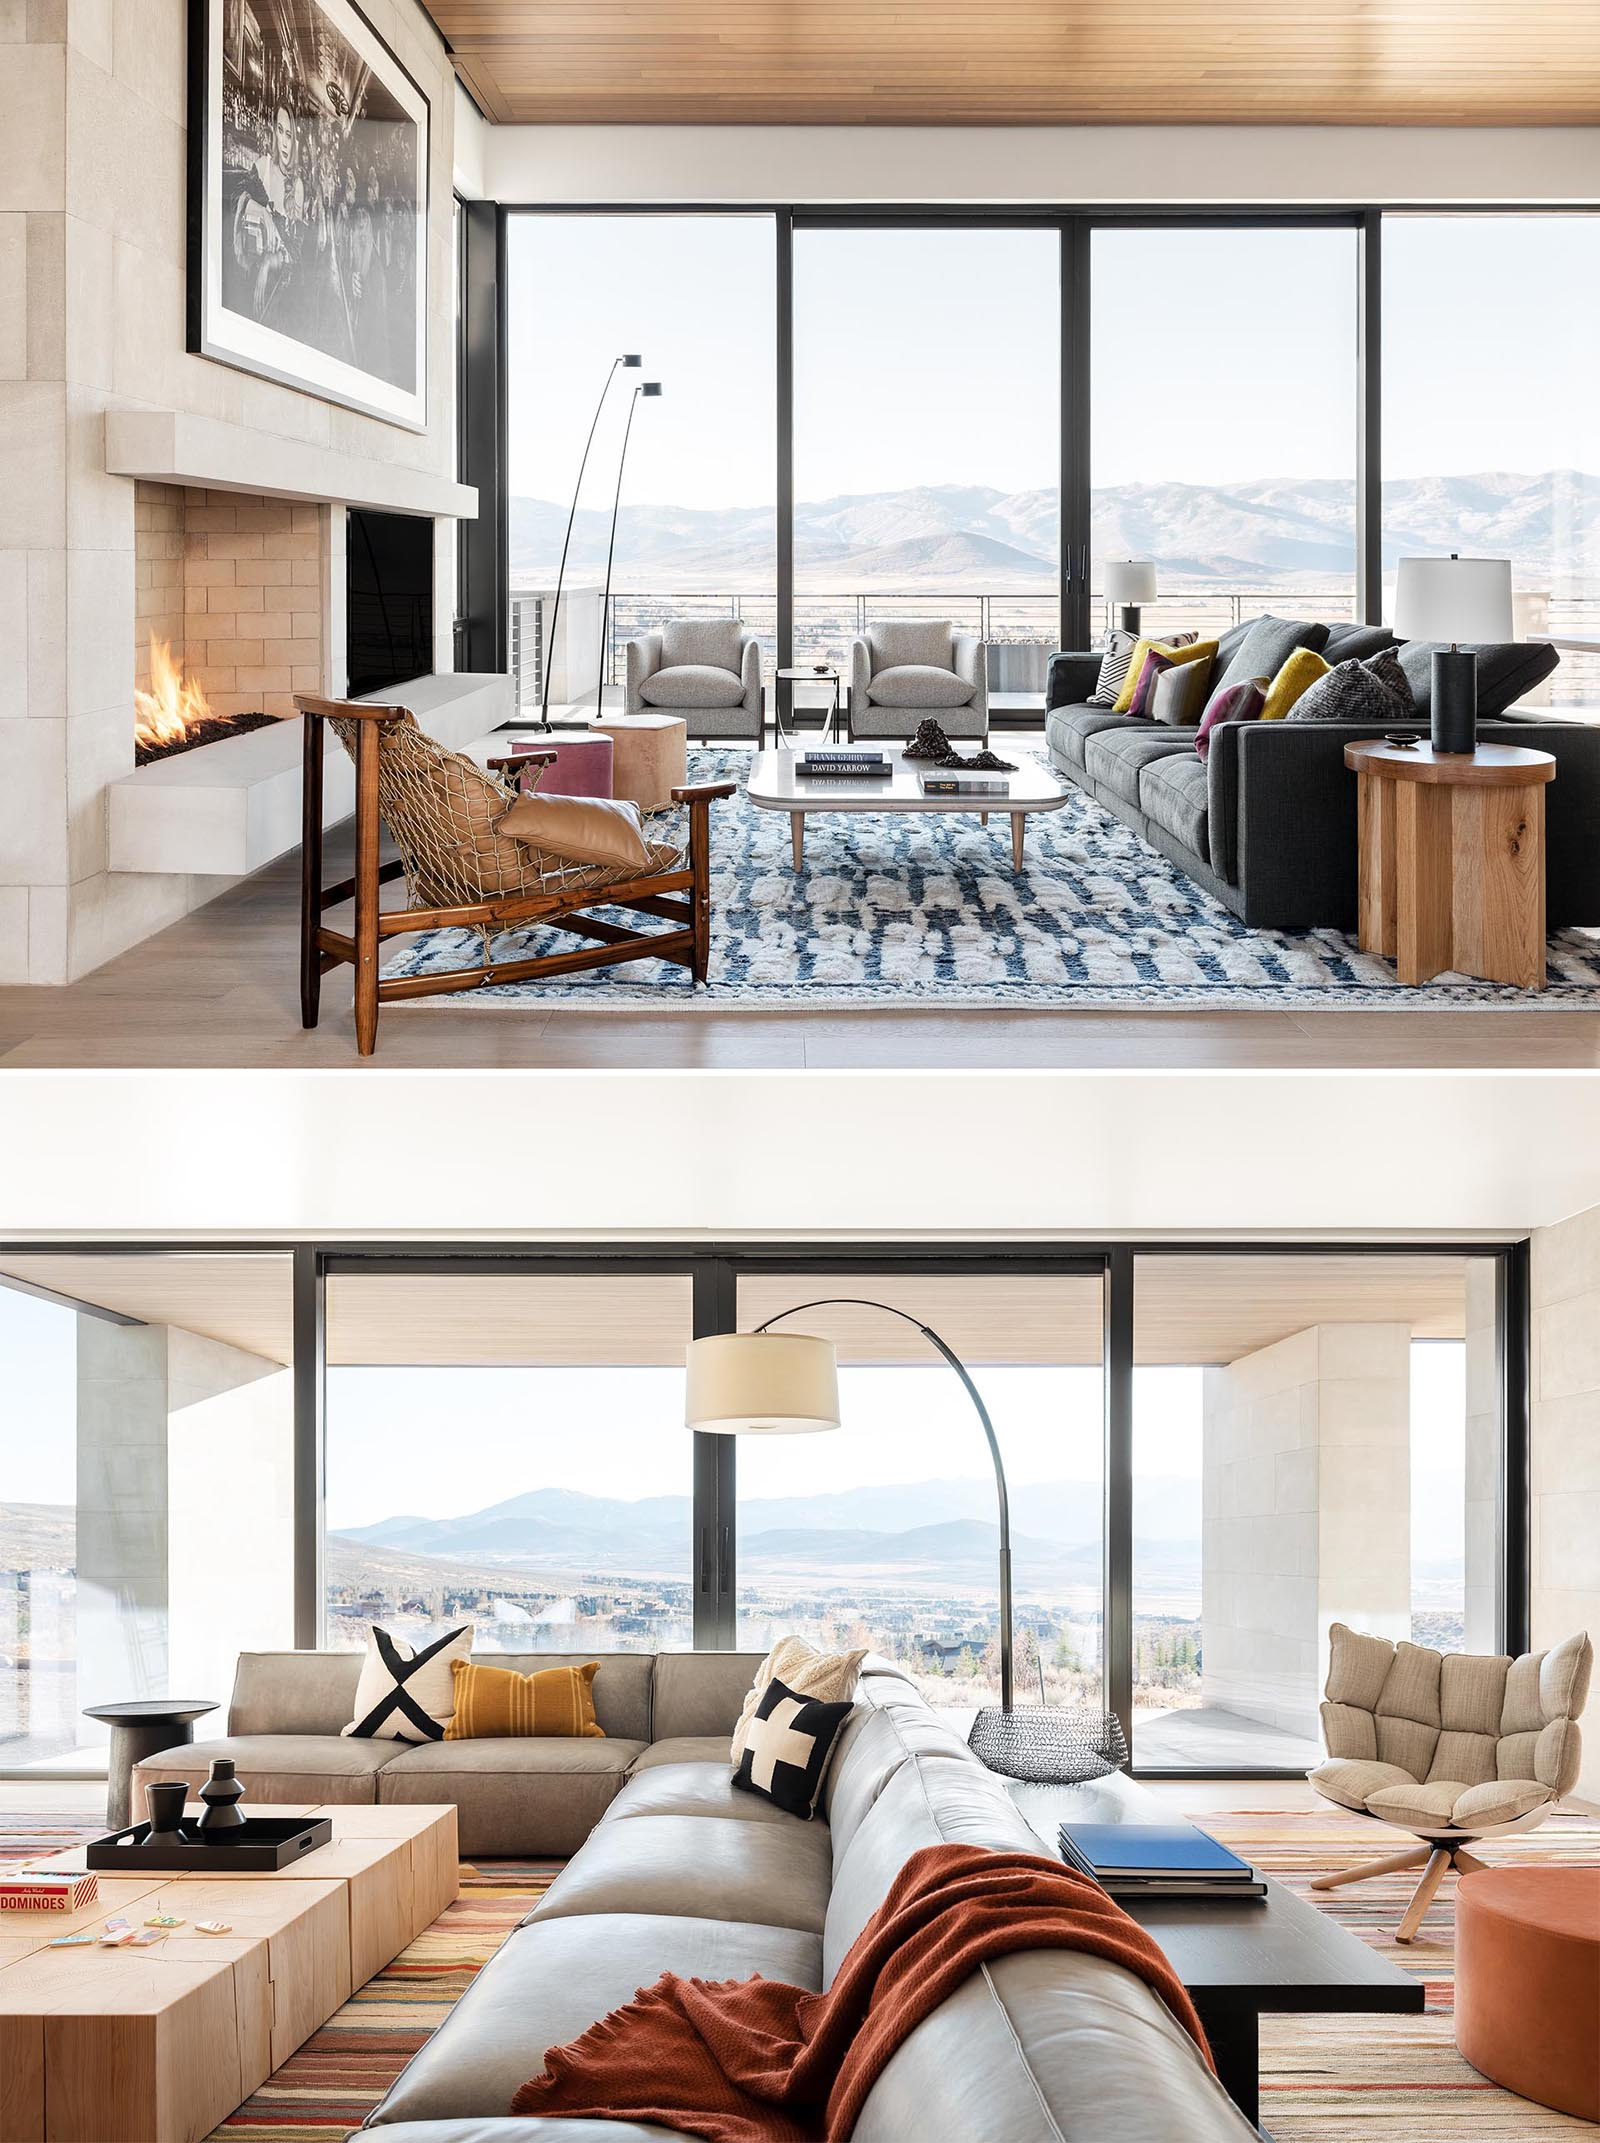 This modern living room has large windows and sliding glass doors to take advantage of the views, while a fireplace is the focal point for the living room.